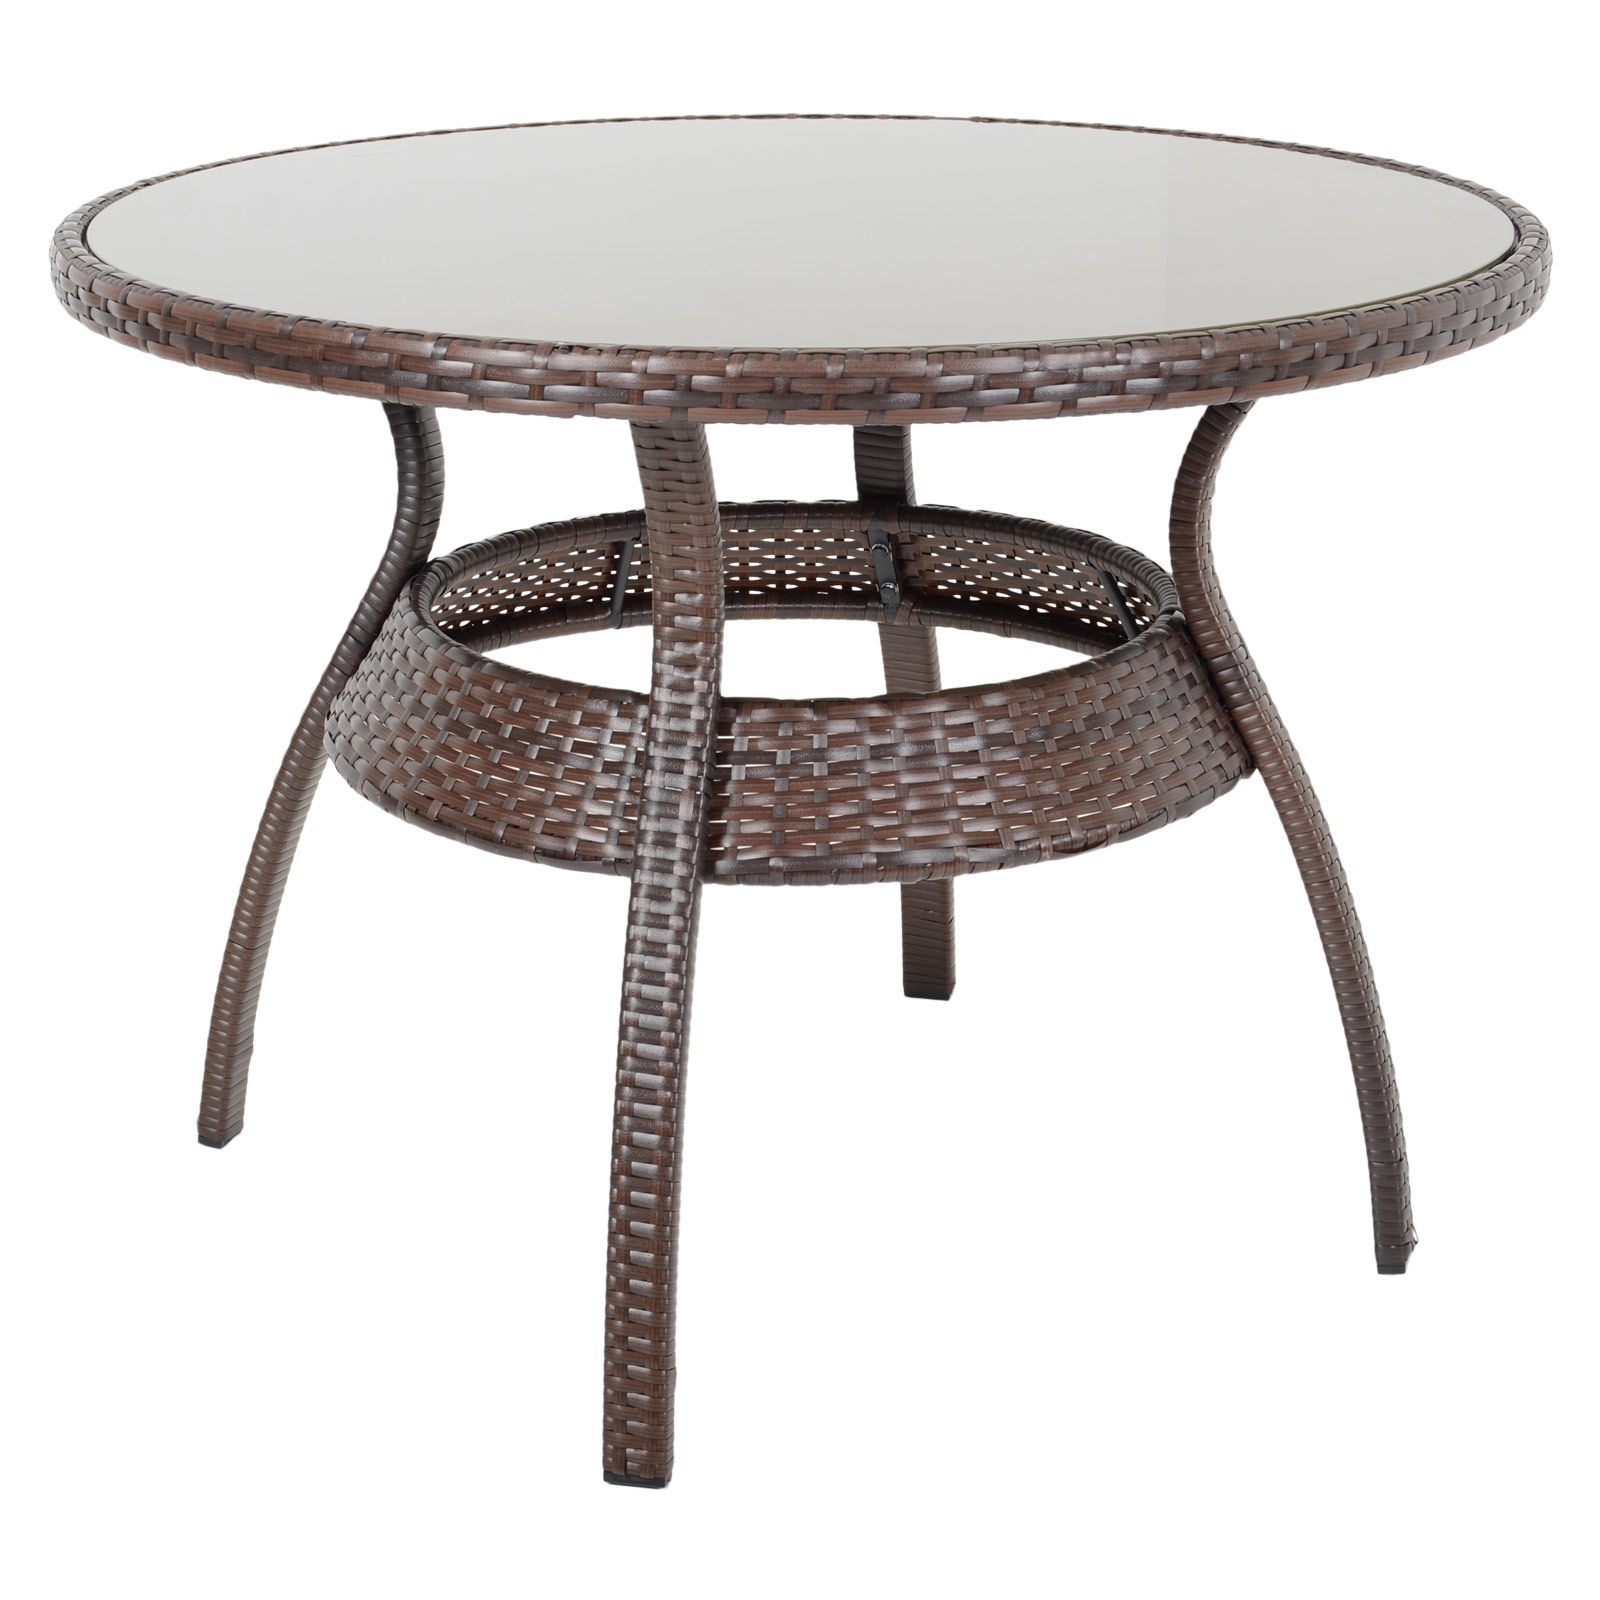 Ravenna dining table 4 chairs brown rattan wicker for Wicker patio table